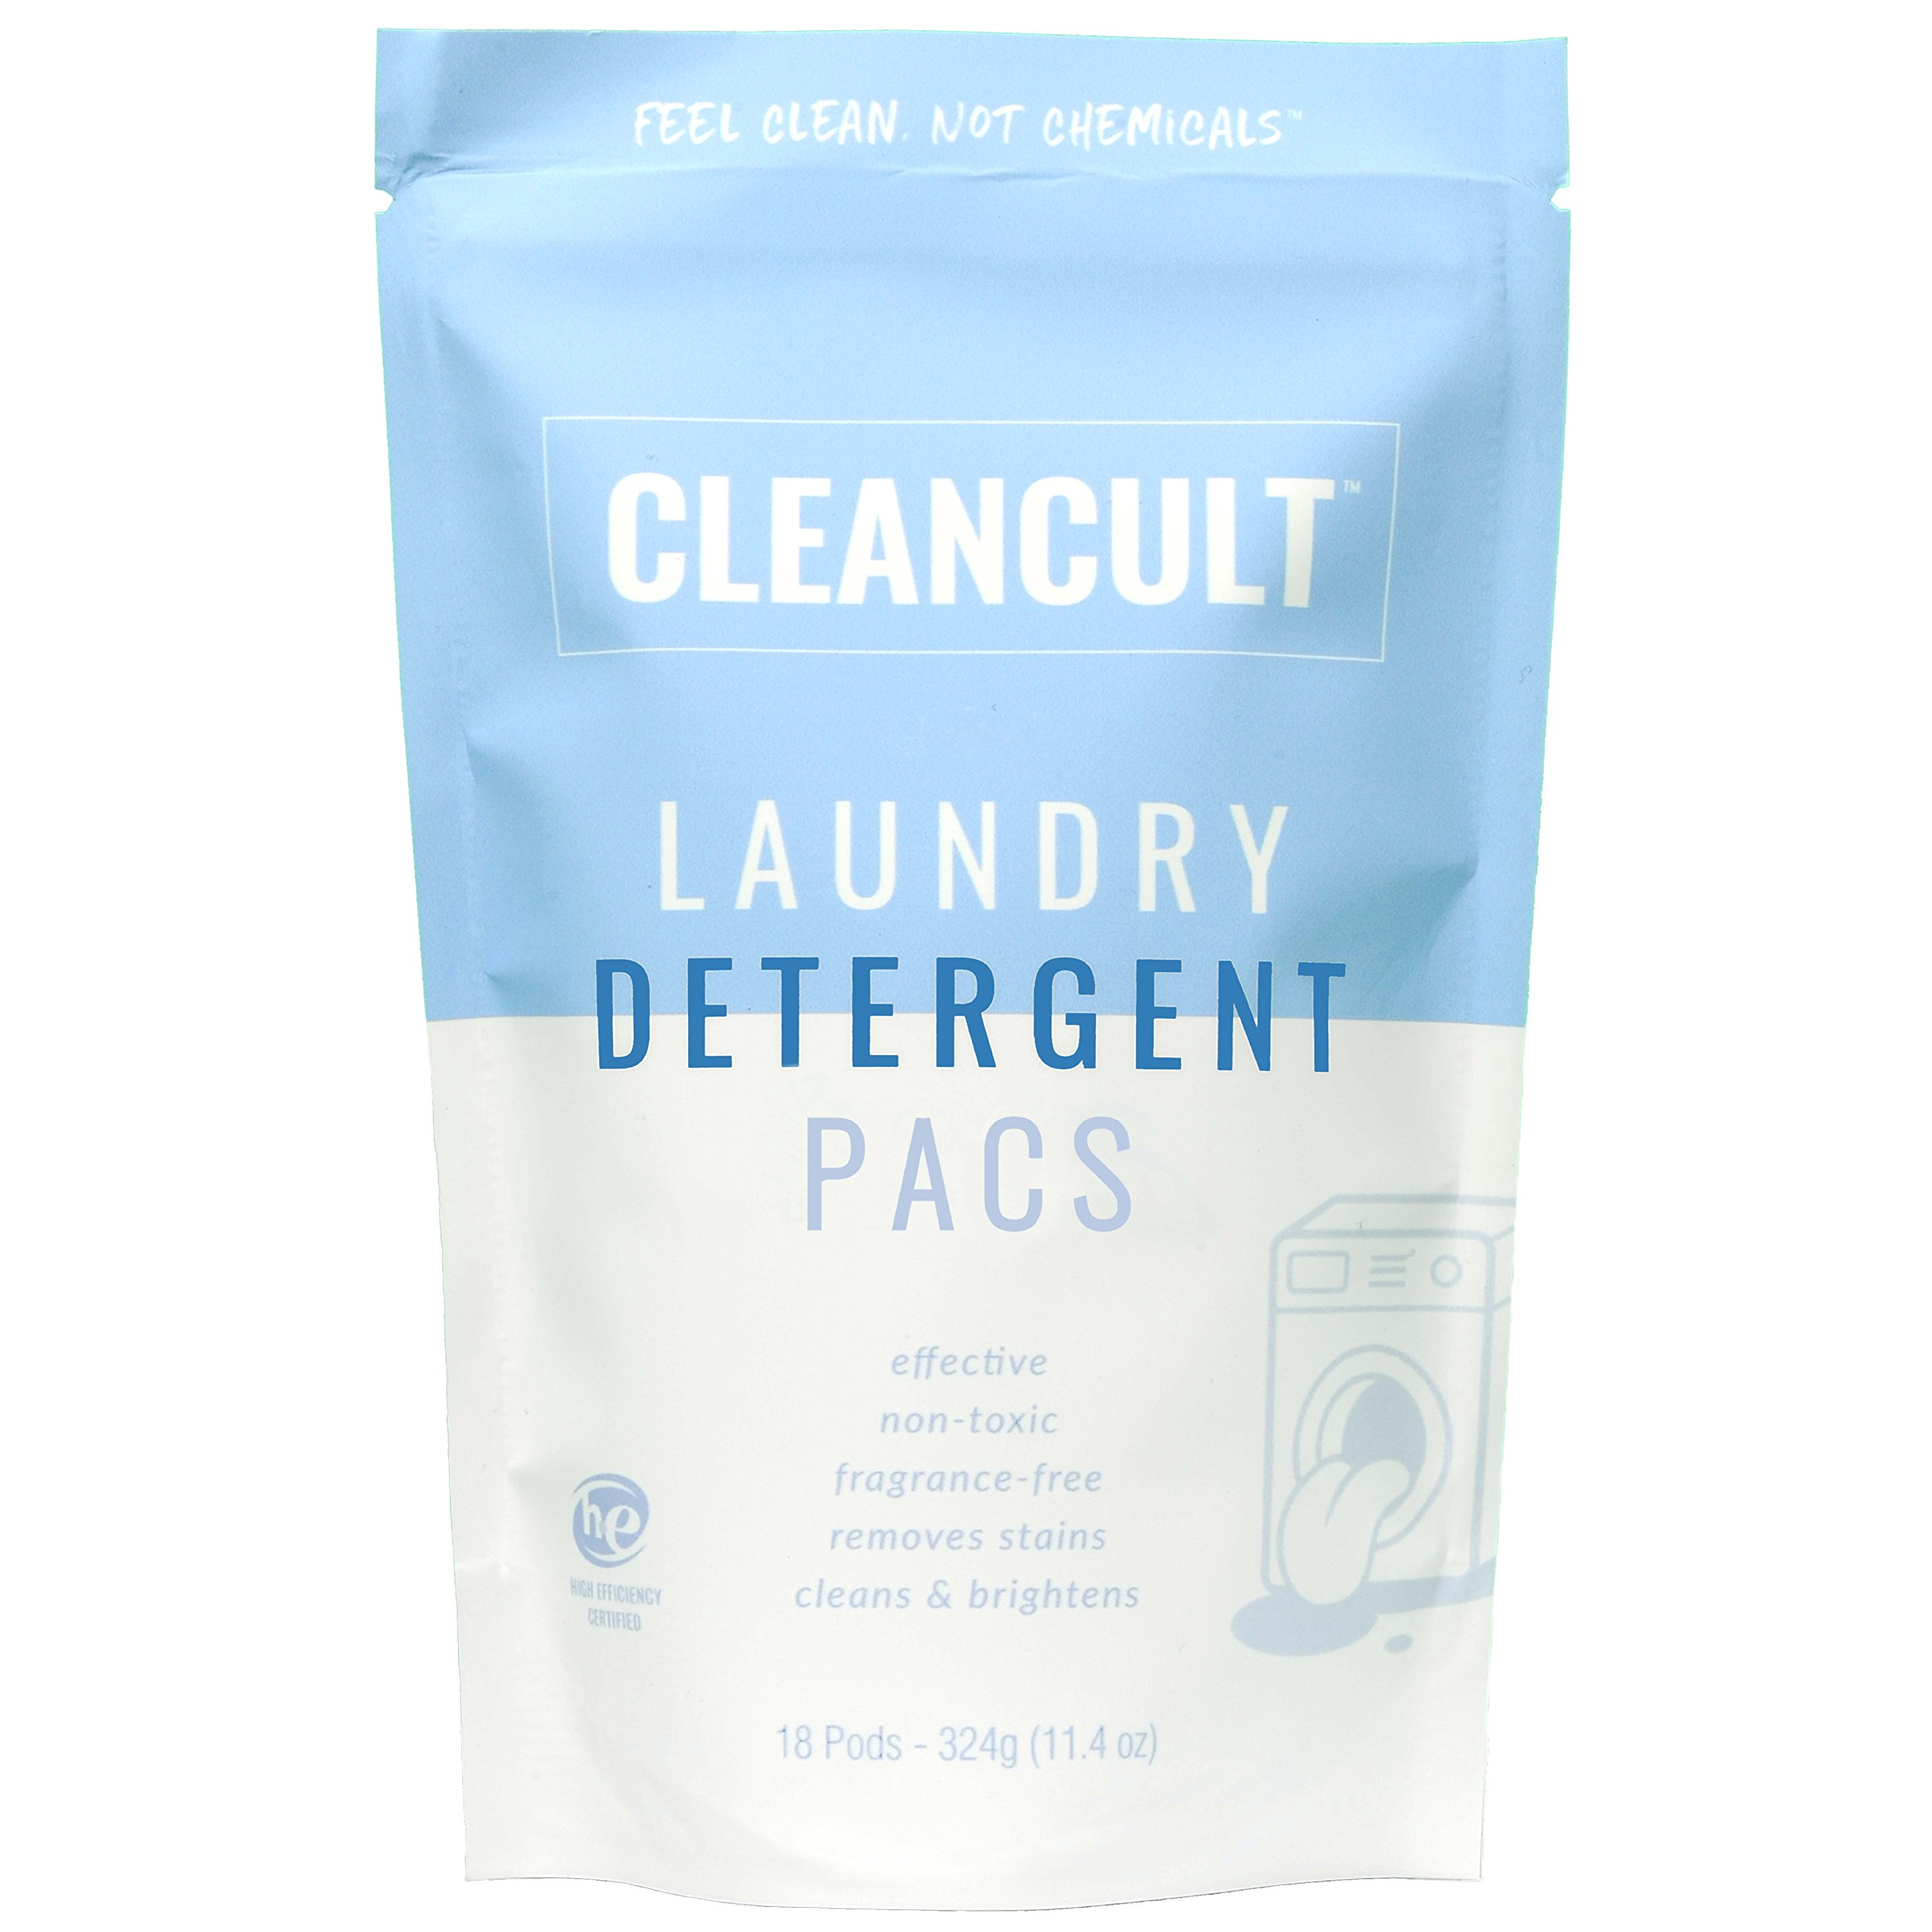 Non Toxic Laundry Detergent Pacs - Natural, Gentle, Free and Clear for Sensitive Skin, Infant, and Babies - Scent Free, Eco Friendly, Baby Safe, Green, Eczema, Powder/Fragrance Free - Cleancult